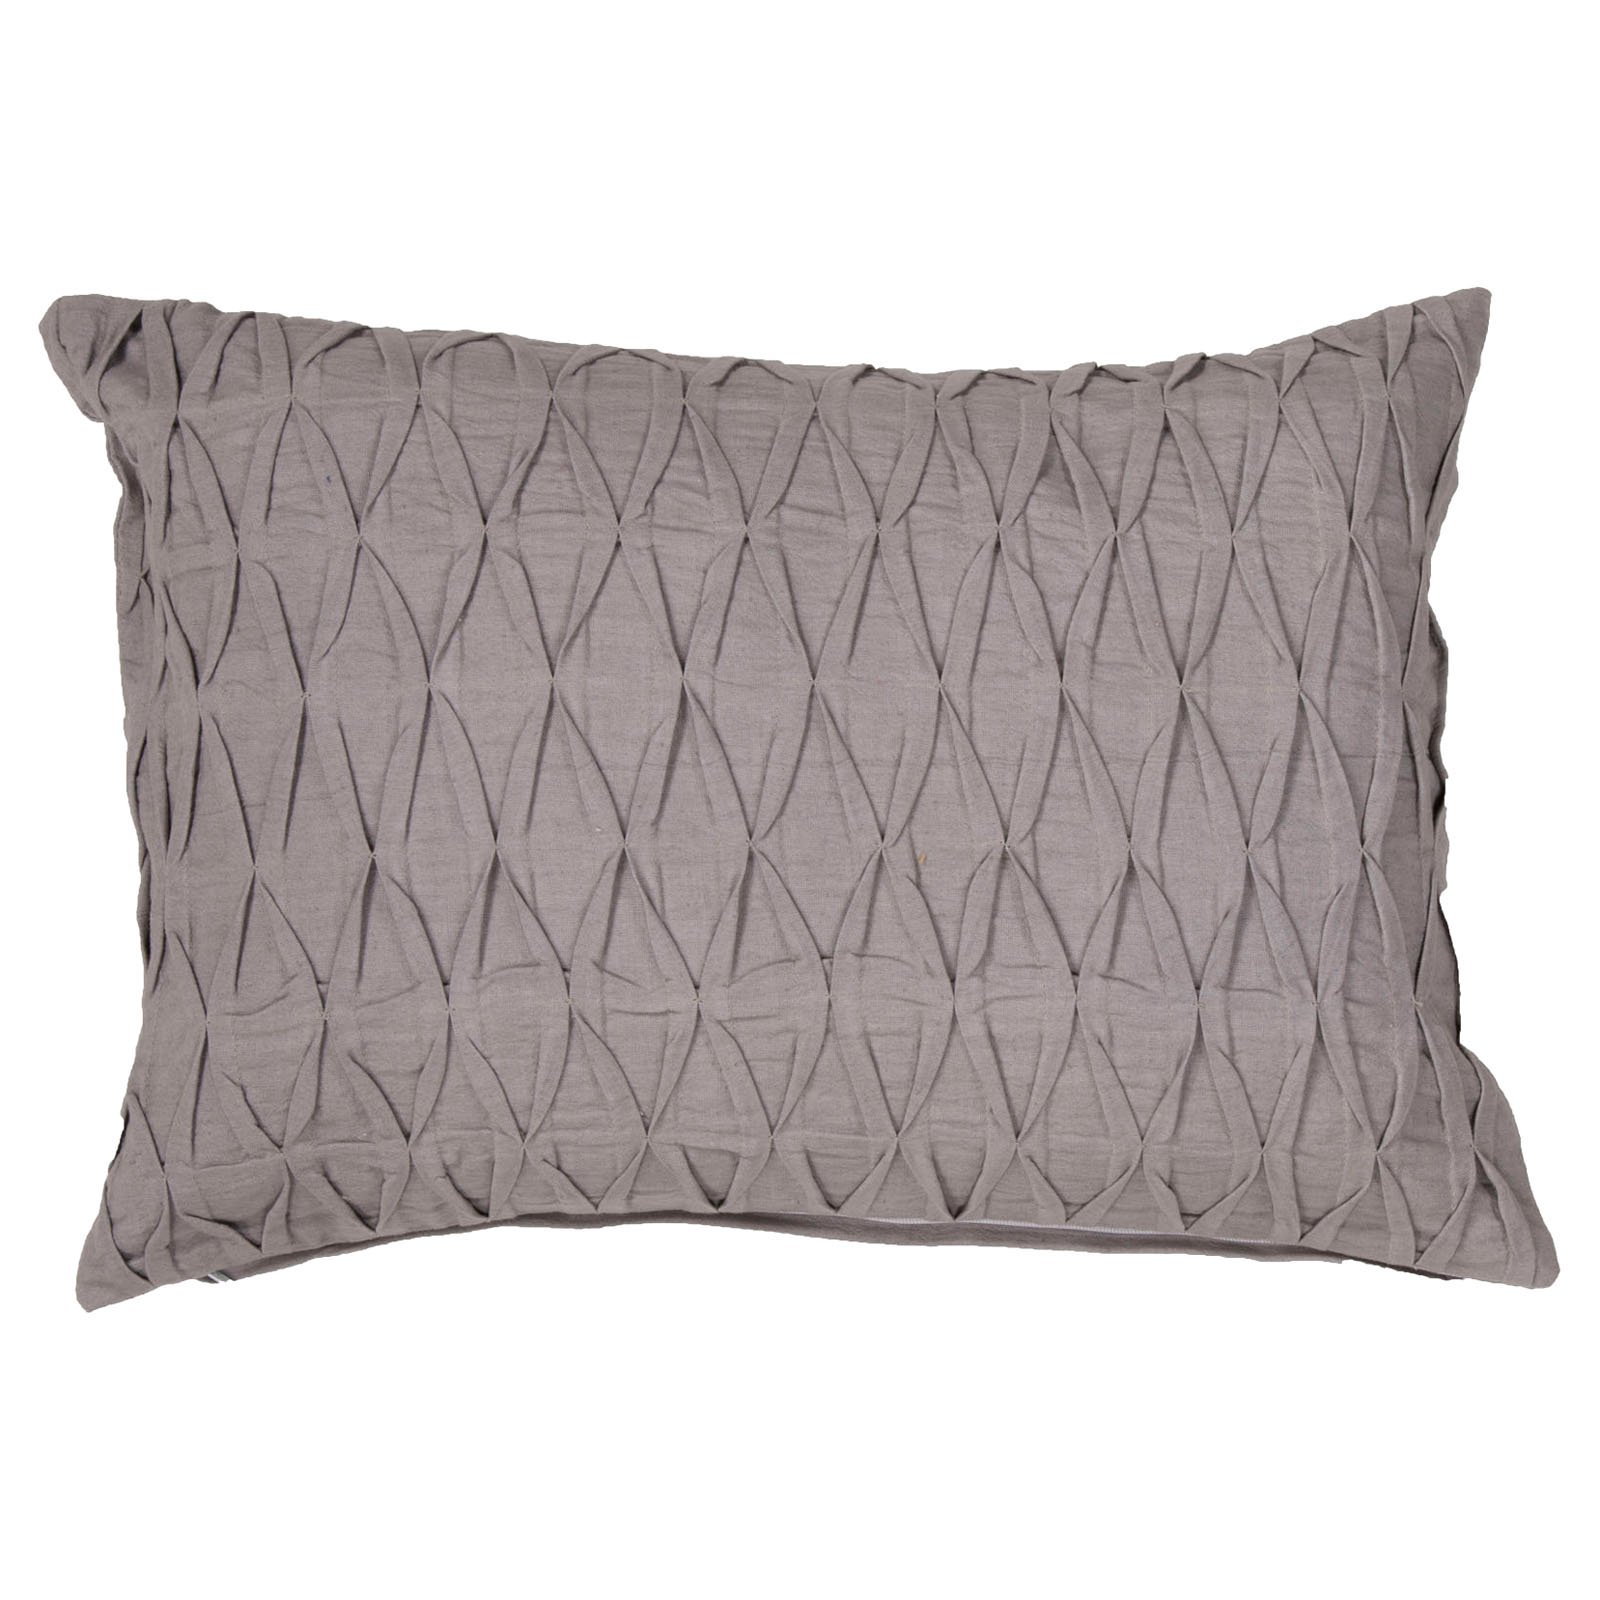 Jaipur Petal Cotton and Linen Decorative Pillow